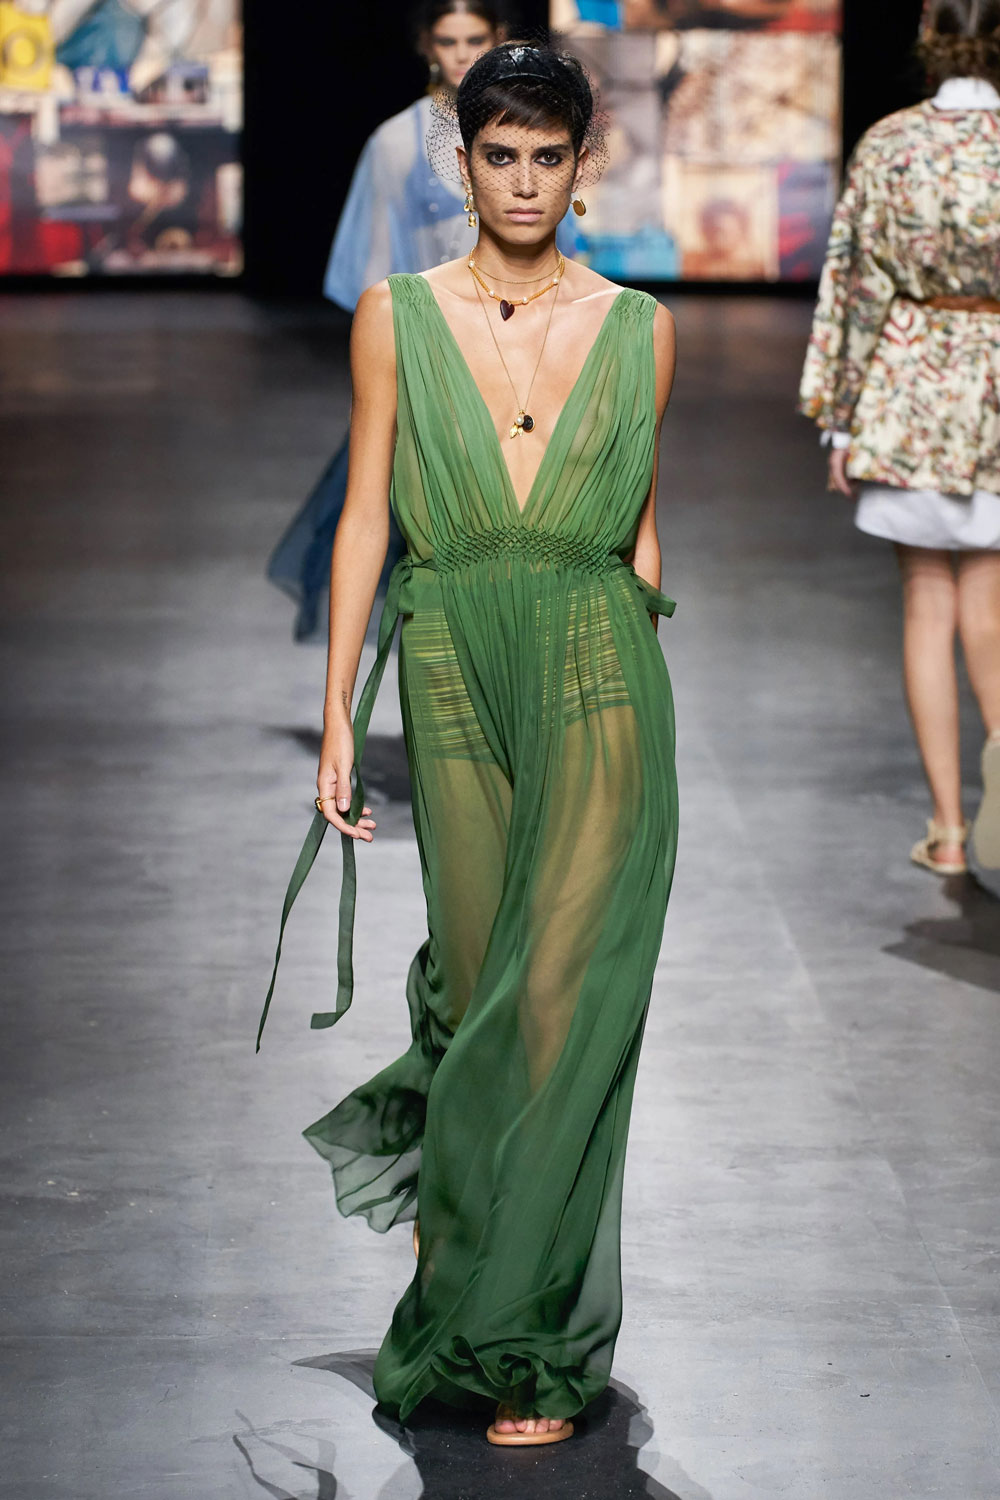 fashion_week_spring_2021_ready-to-wear_christian_dior_1